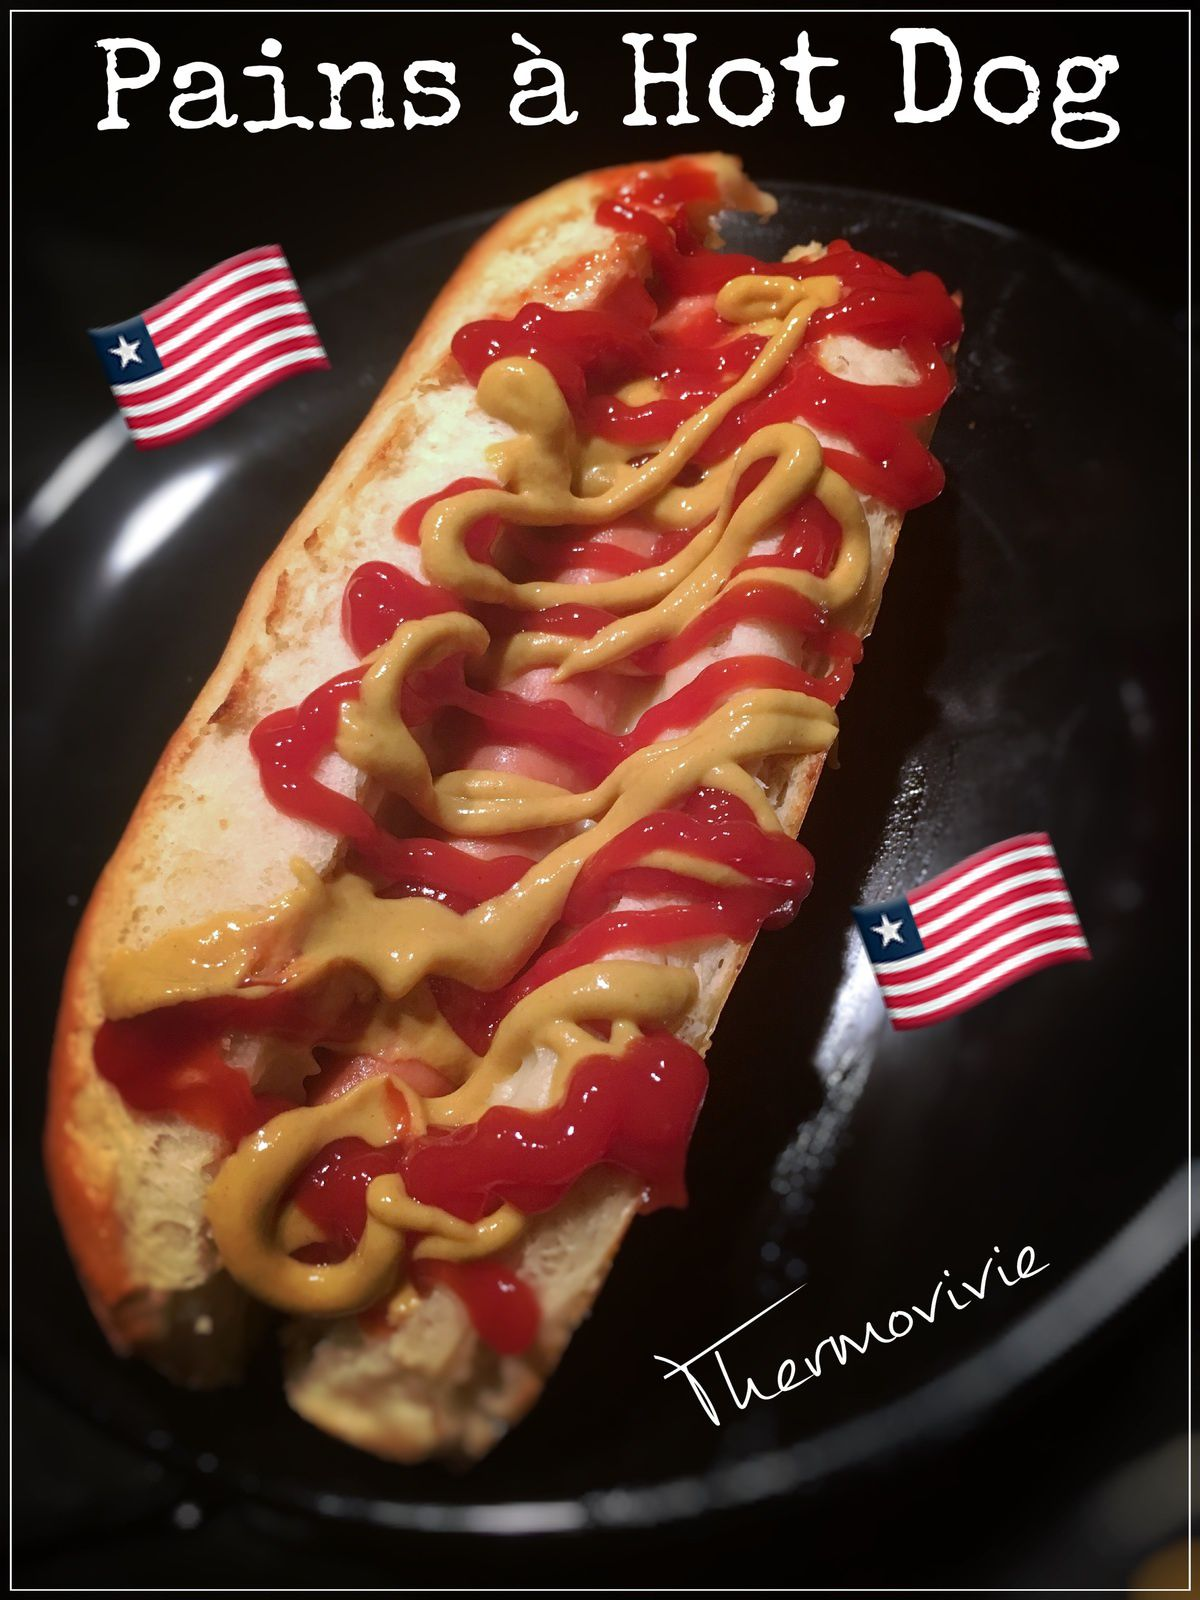 pains hot dog et sauce au cheddar recette au thermomix thermovivie. Black Bedroom Furniture Sets. Home Design Ideas